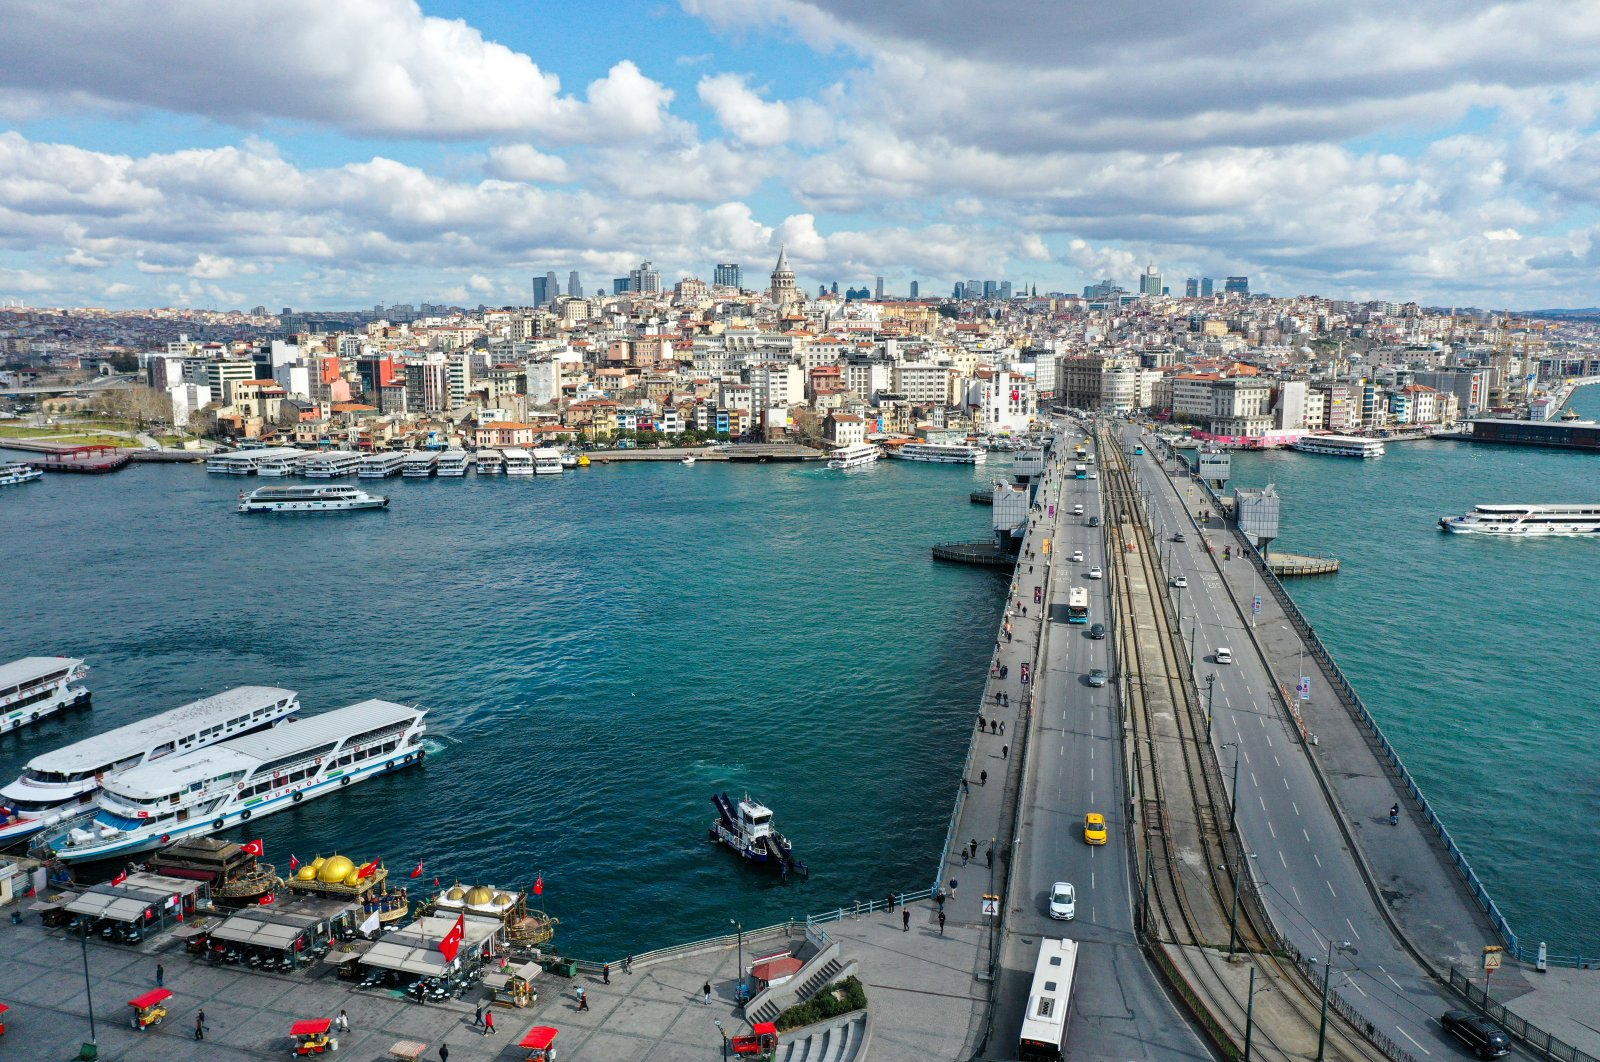 The traffic as well as the air quality in Istanbul's Eminönü district has greatly improved since the government started warning people to stay home due to COVID-19. ( AA Photo )